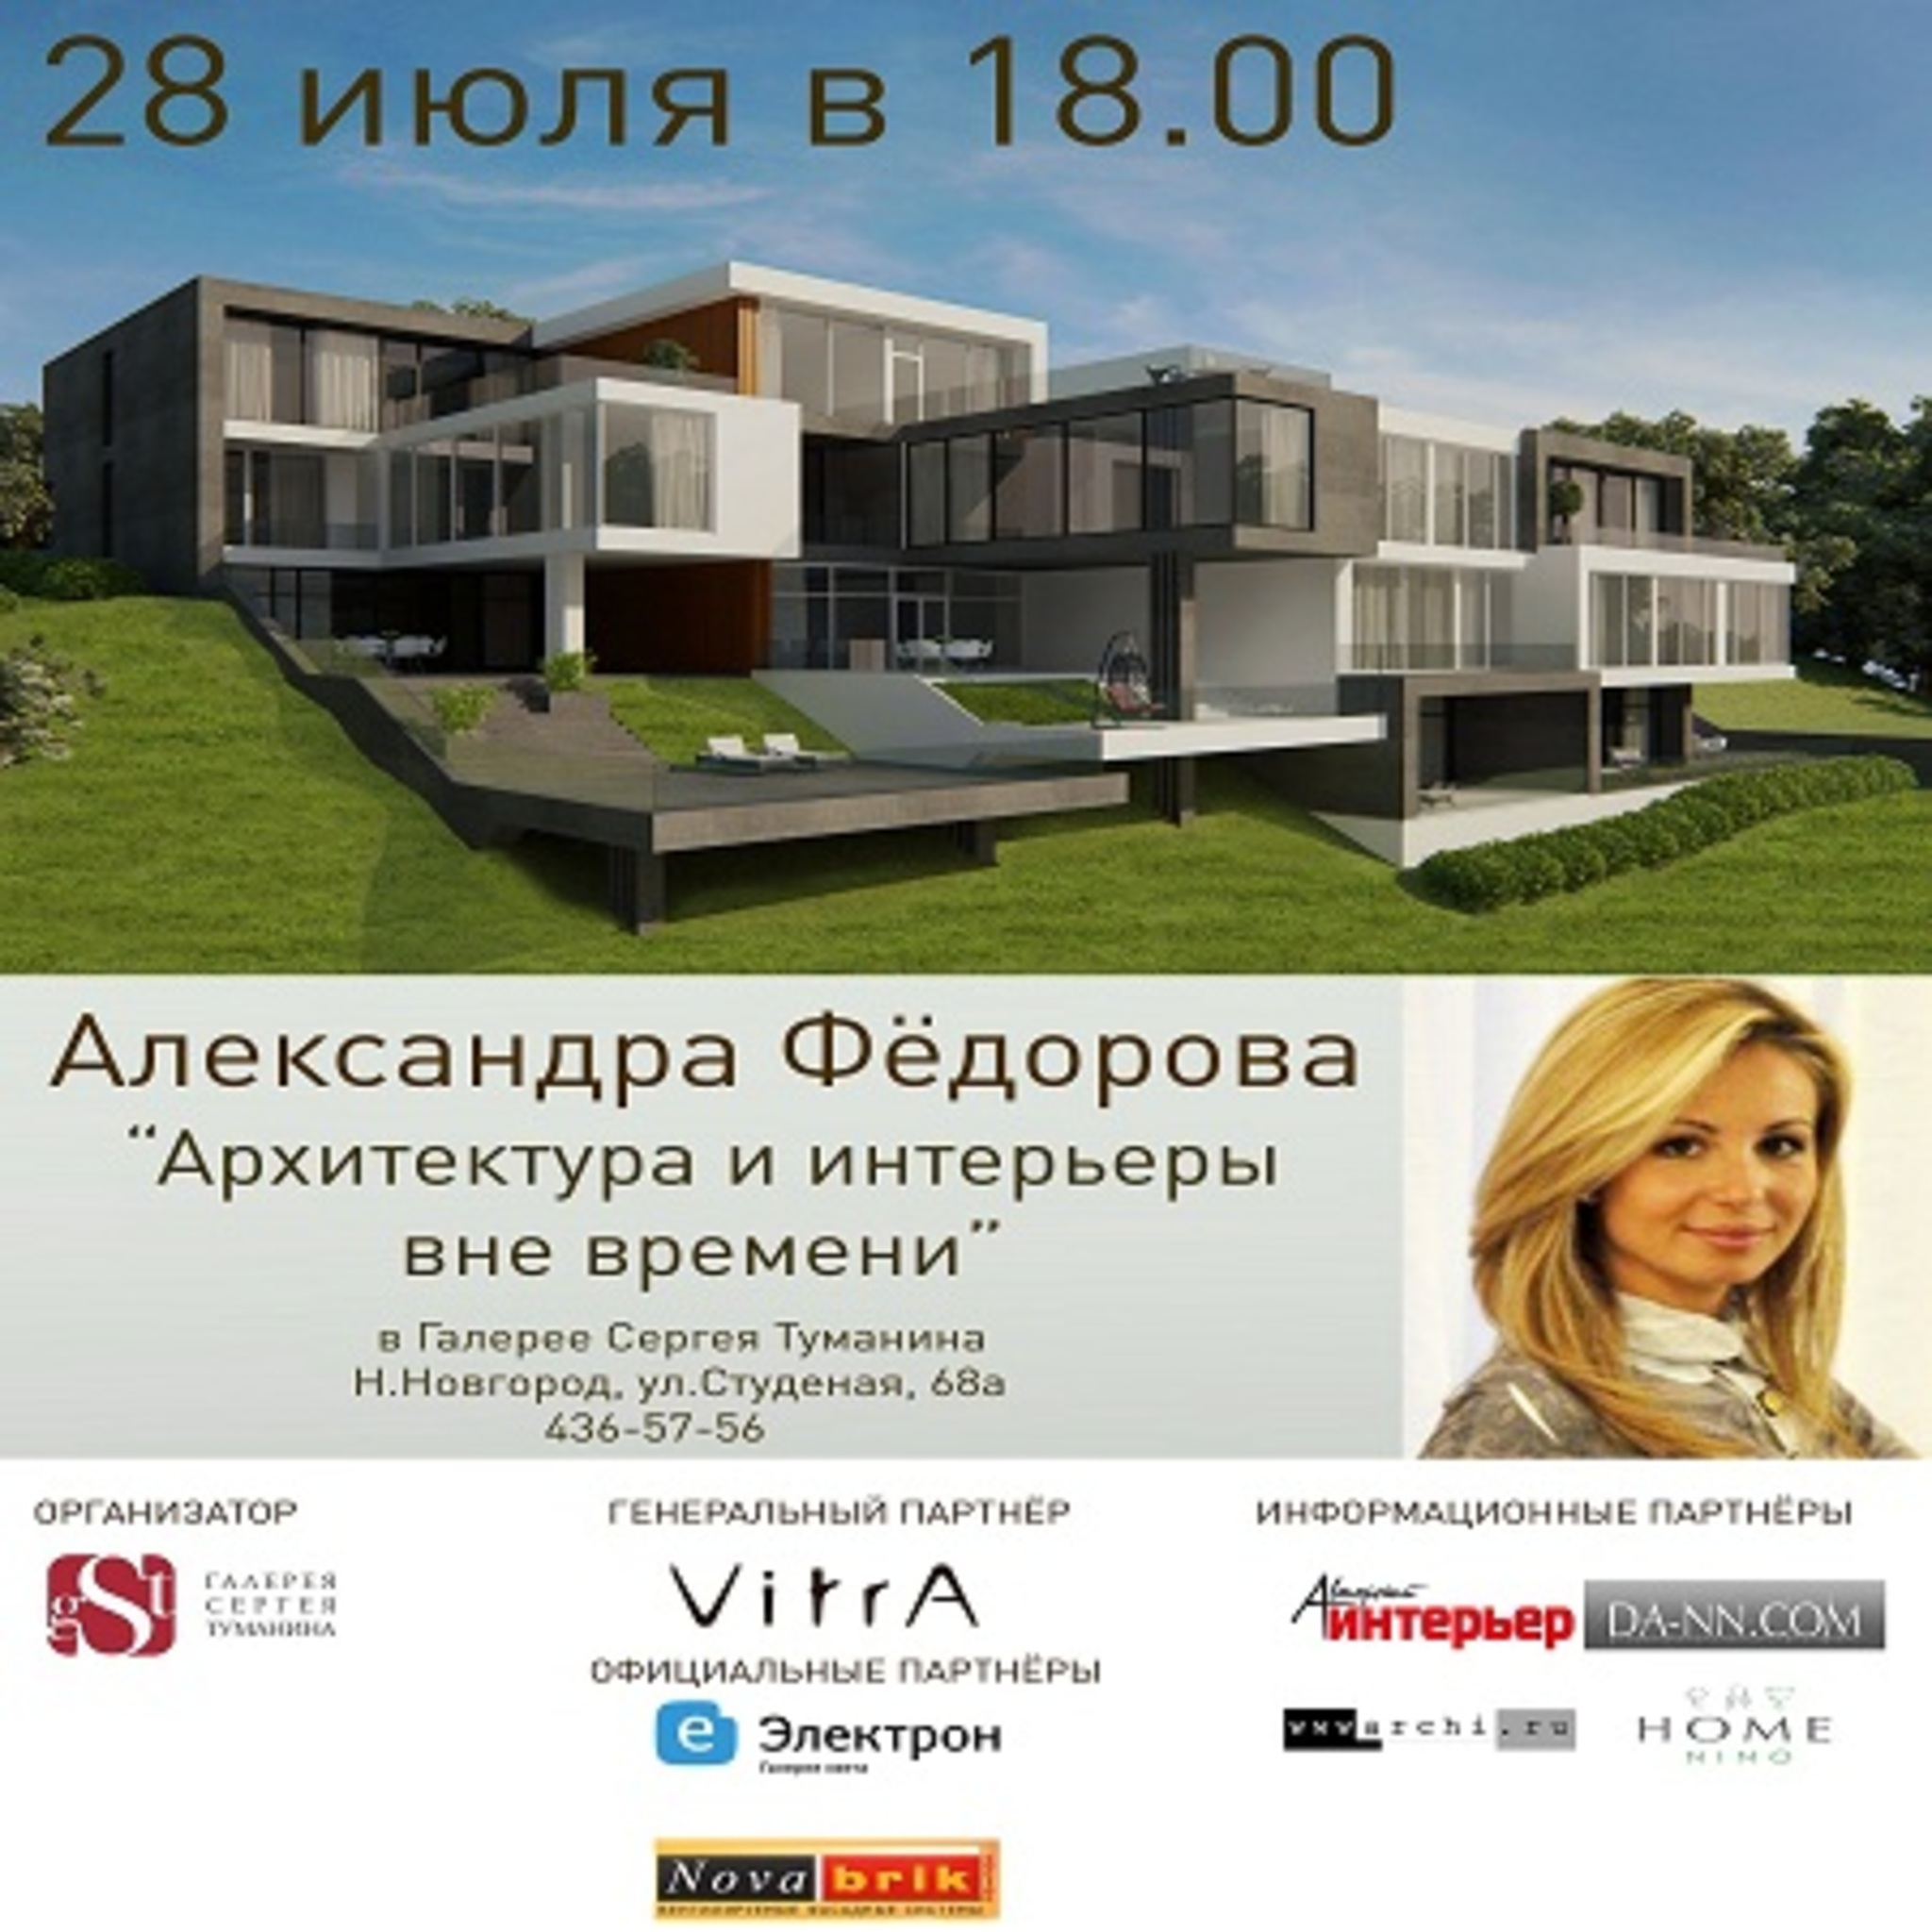 Lecture Alexandra Fedorova The architecture and interiors timeless